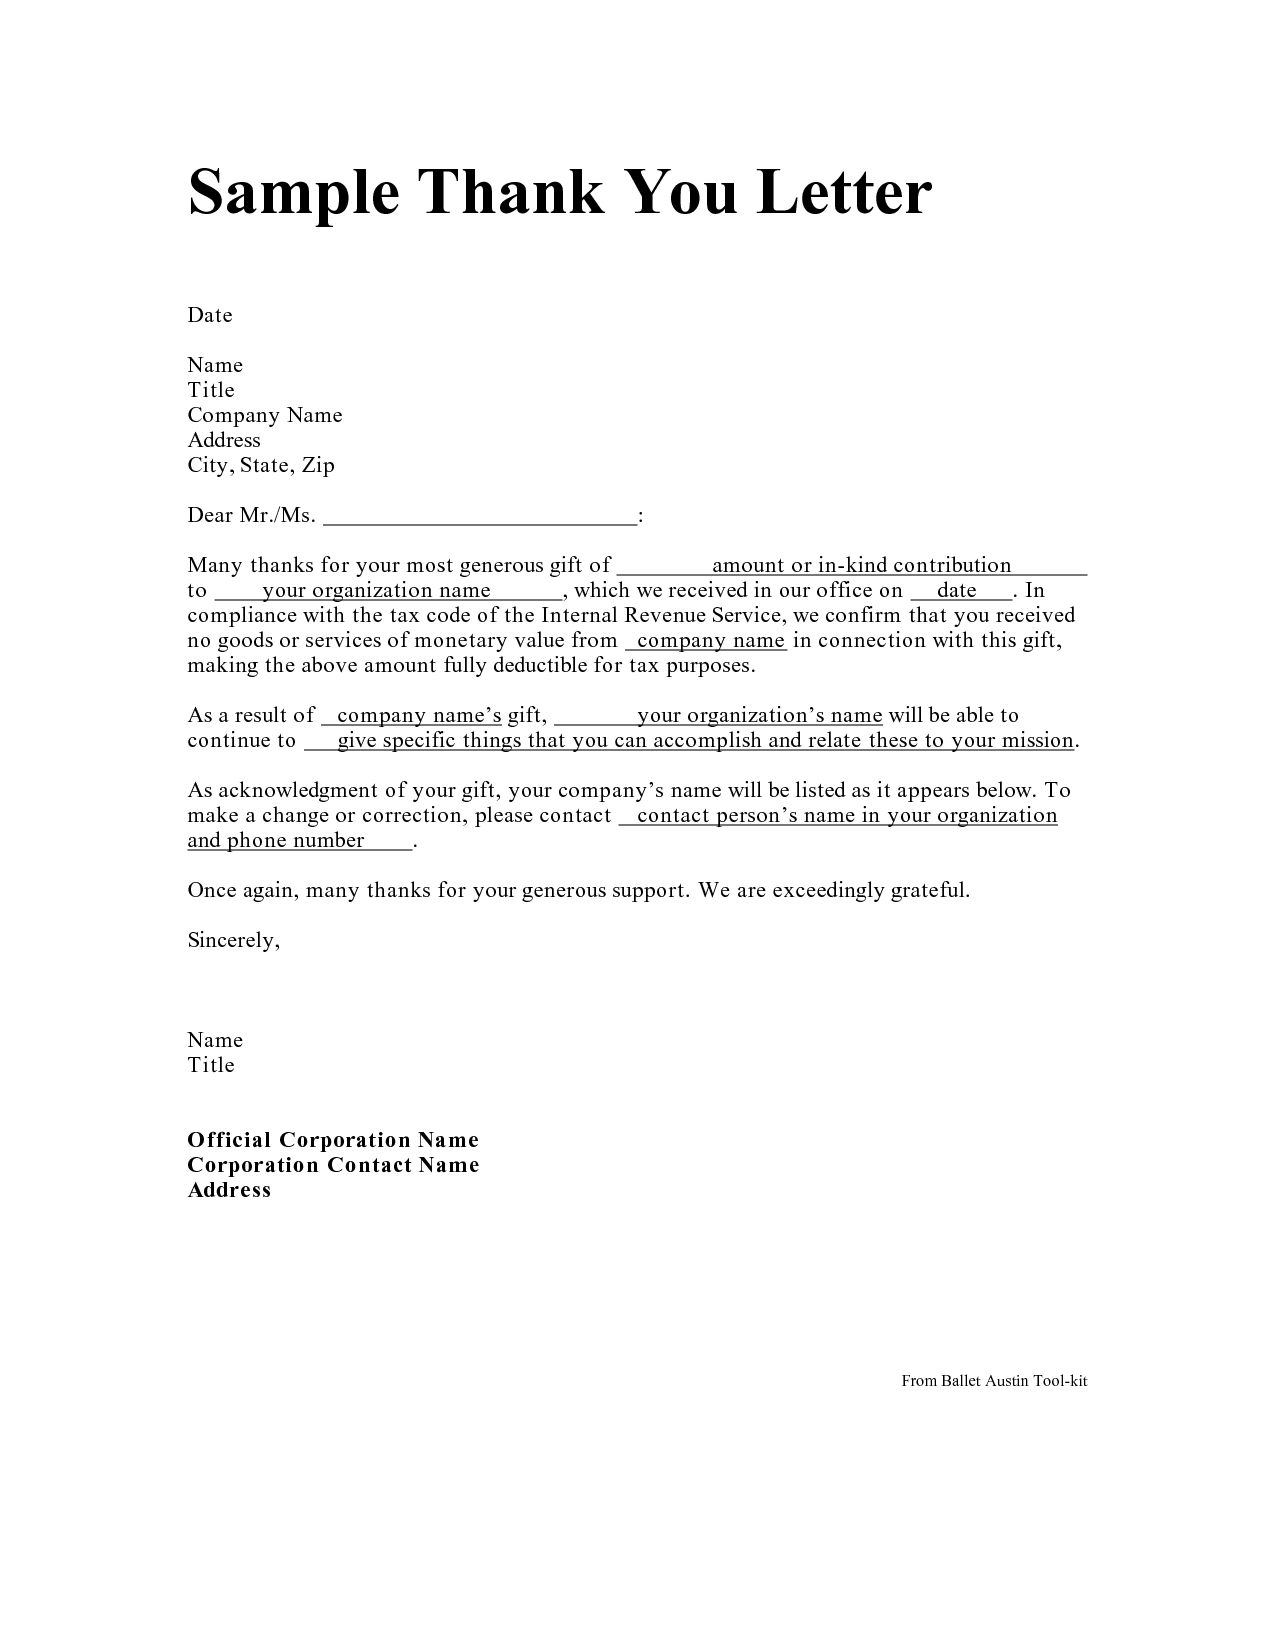 thank you cover letter template Collection-Personal Thank You Letter Personal Thank You Letter Samples Writing Thank You Notes Thank You Note Examples 8-g